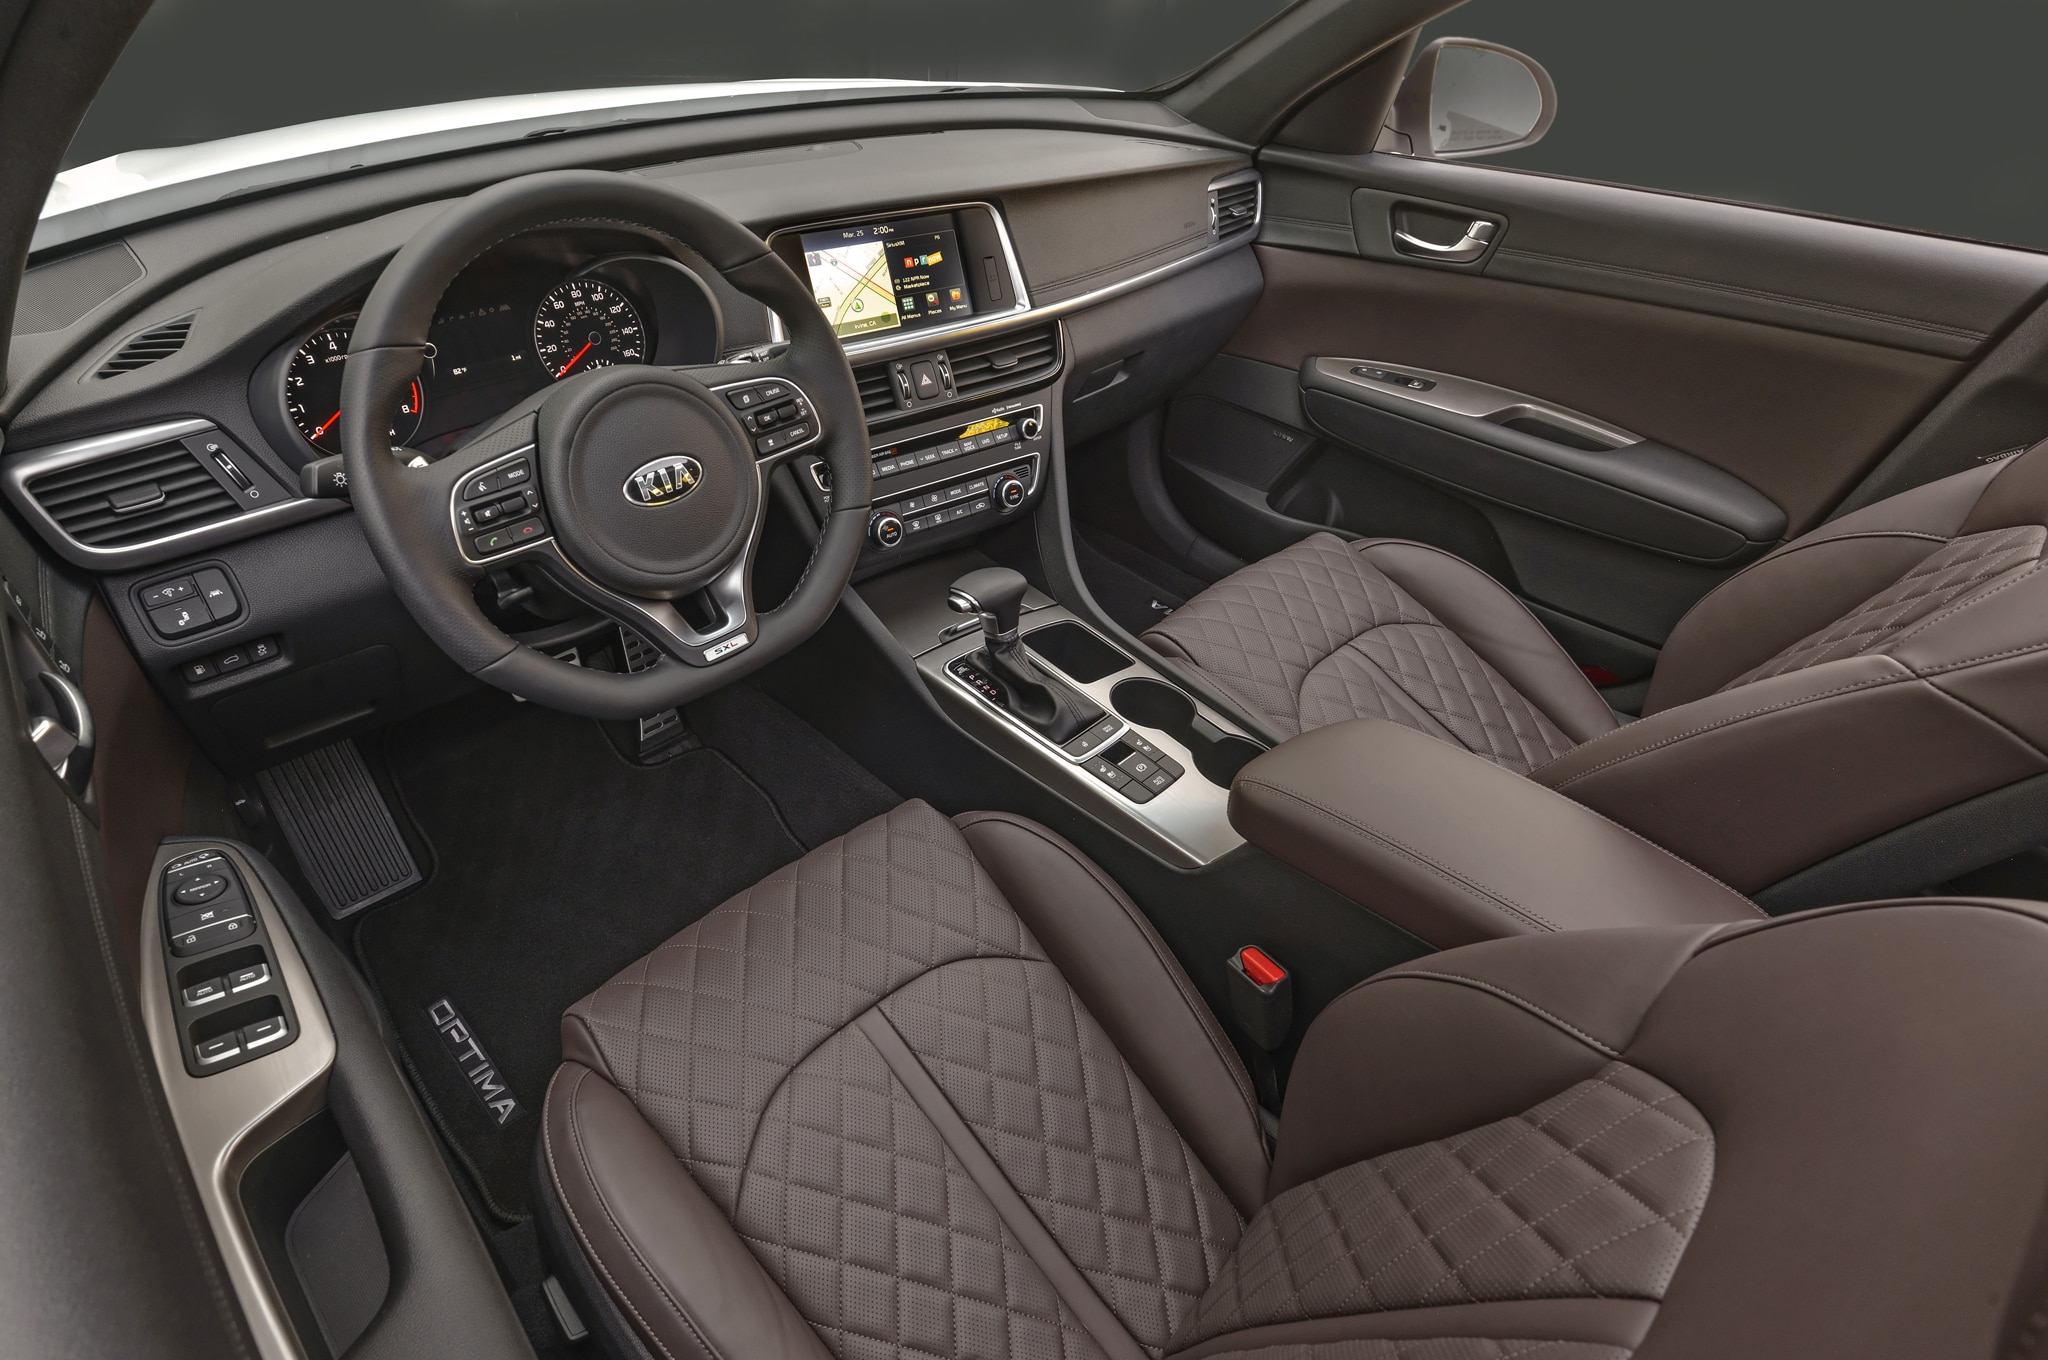 cars sxl to cool visit turbo kia places inside optima pinterest photo pin and interior